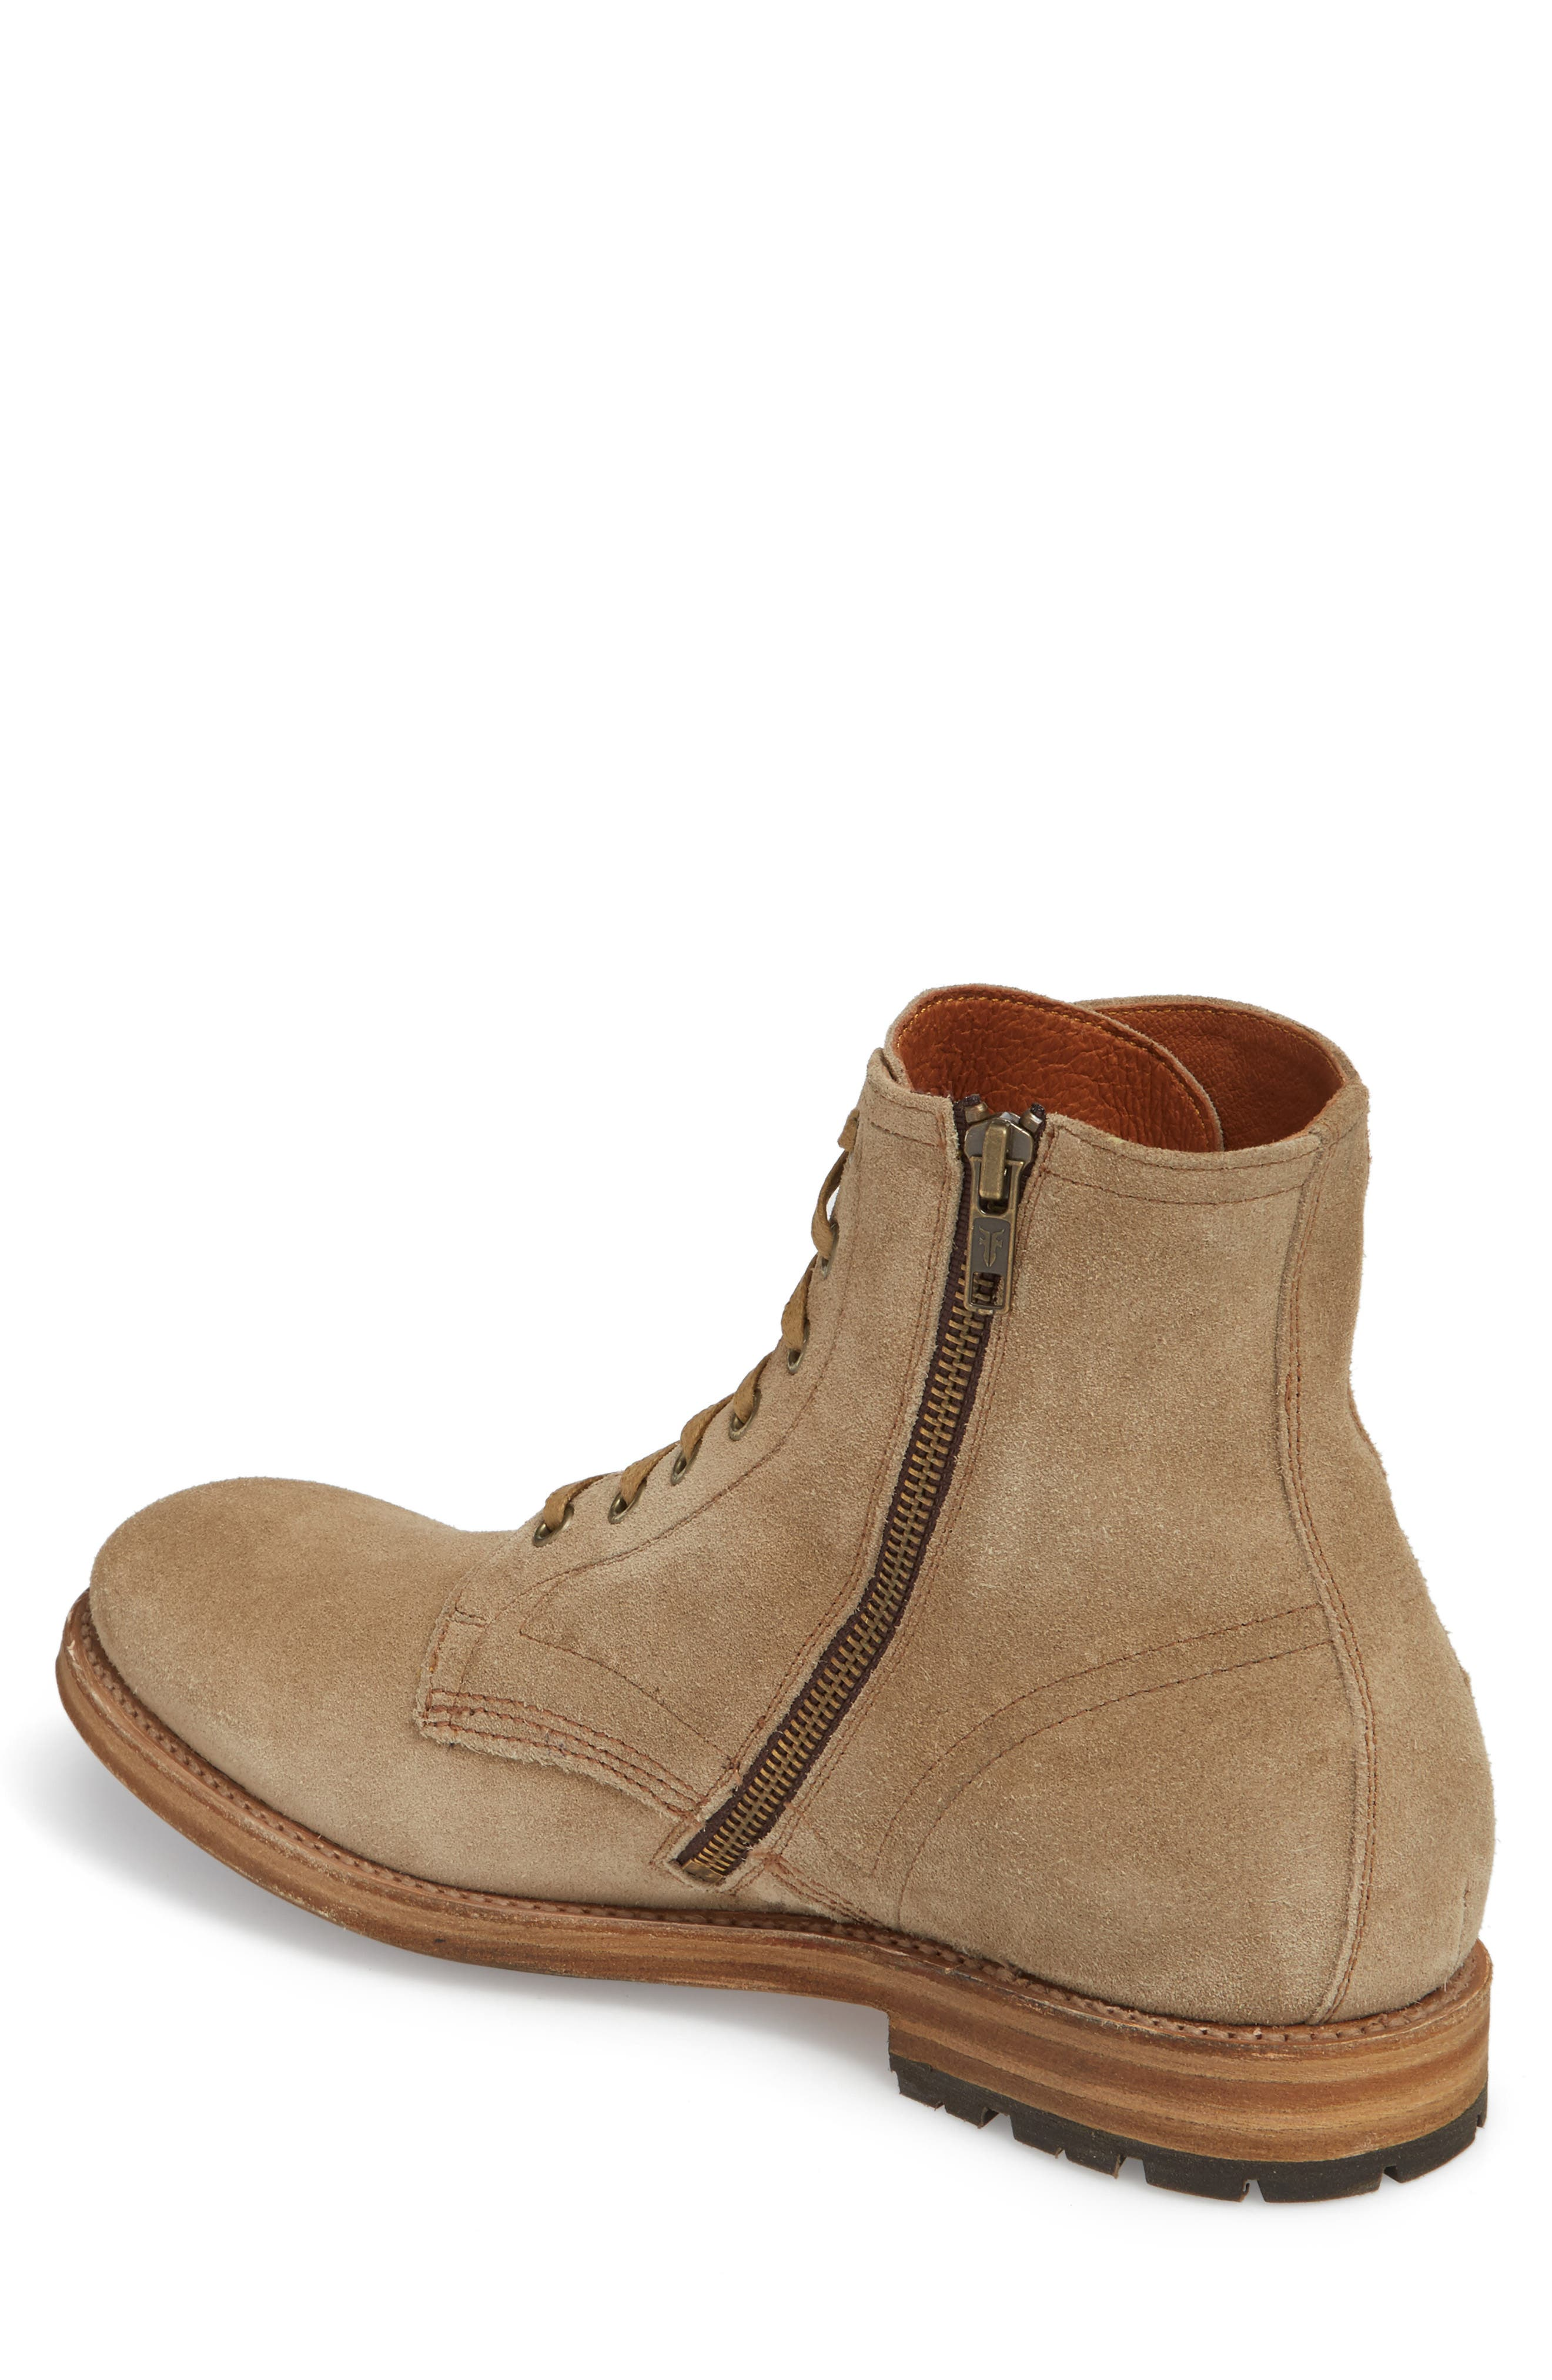 Fry Bowery Side Zip Combat Boot,                             Alternate thumbnail 2, color,                             Ash Suede